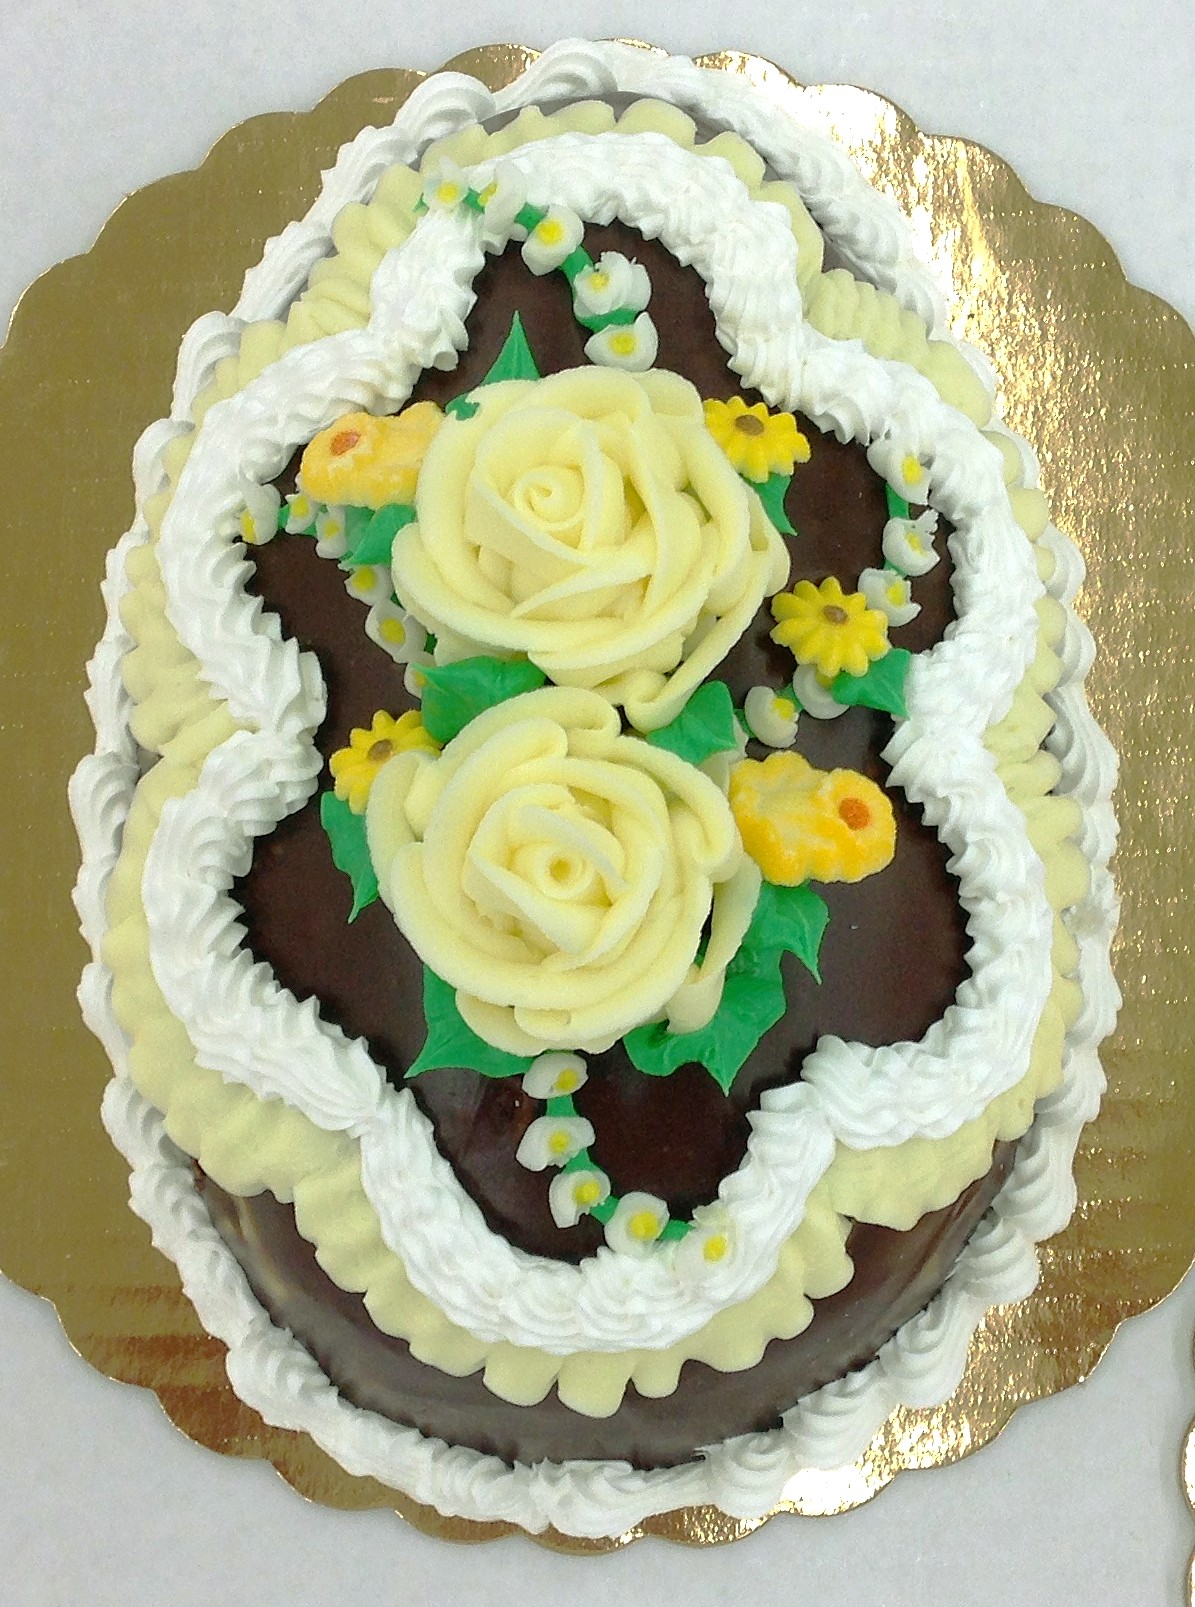 chocolate cake pictures chocolate egg cake classic bakery 2828